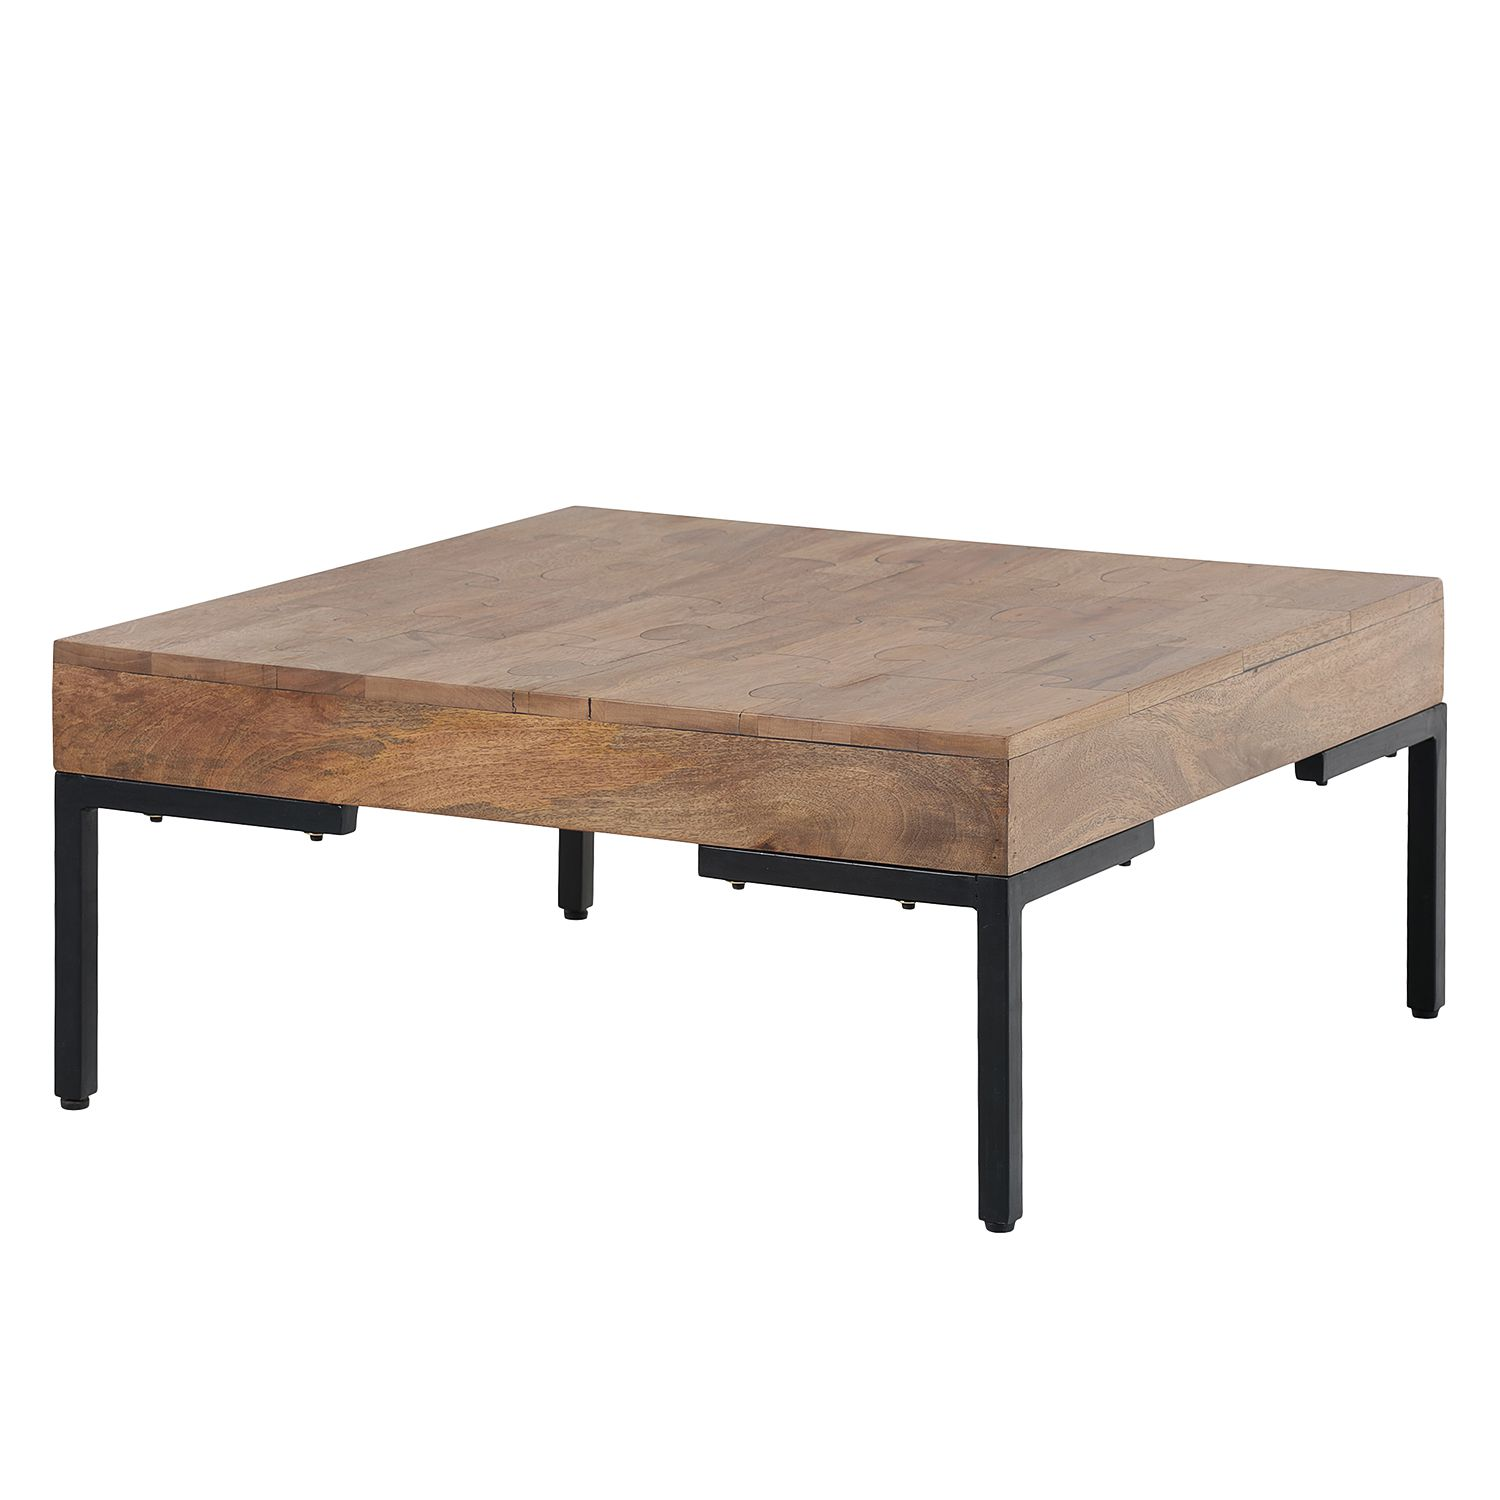 Table basse Camibar III